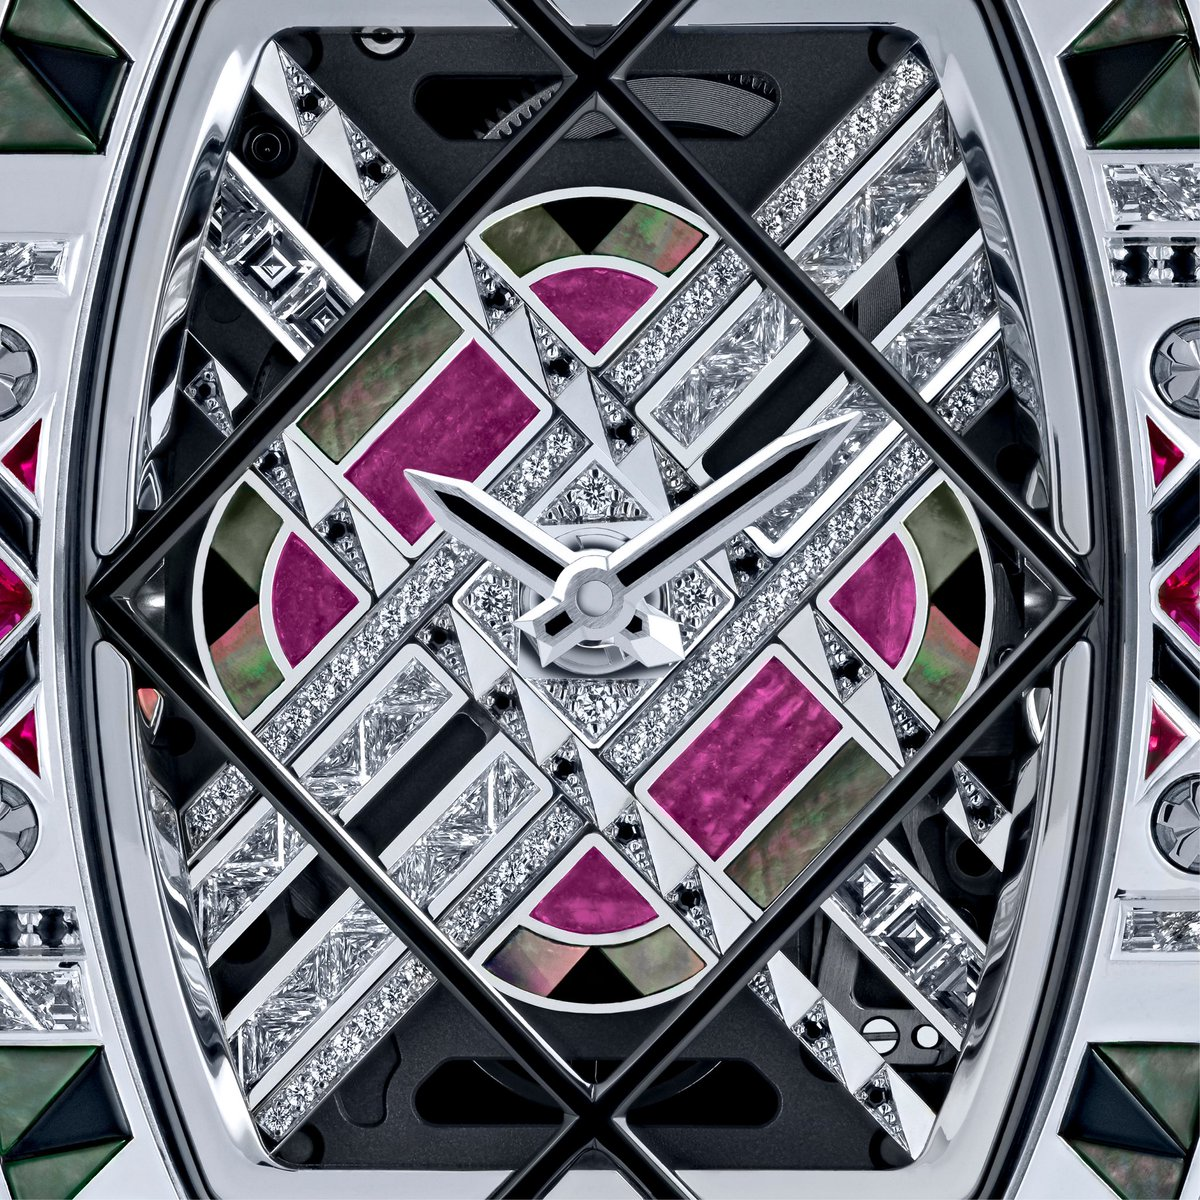 Art Deco led us at the crossroads of cutting-edge watchmaking and high jewellry practices. #RichardMille https://t.co/1NzvPlM8la